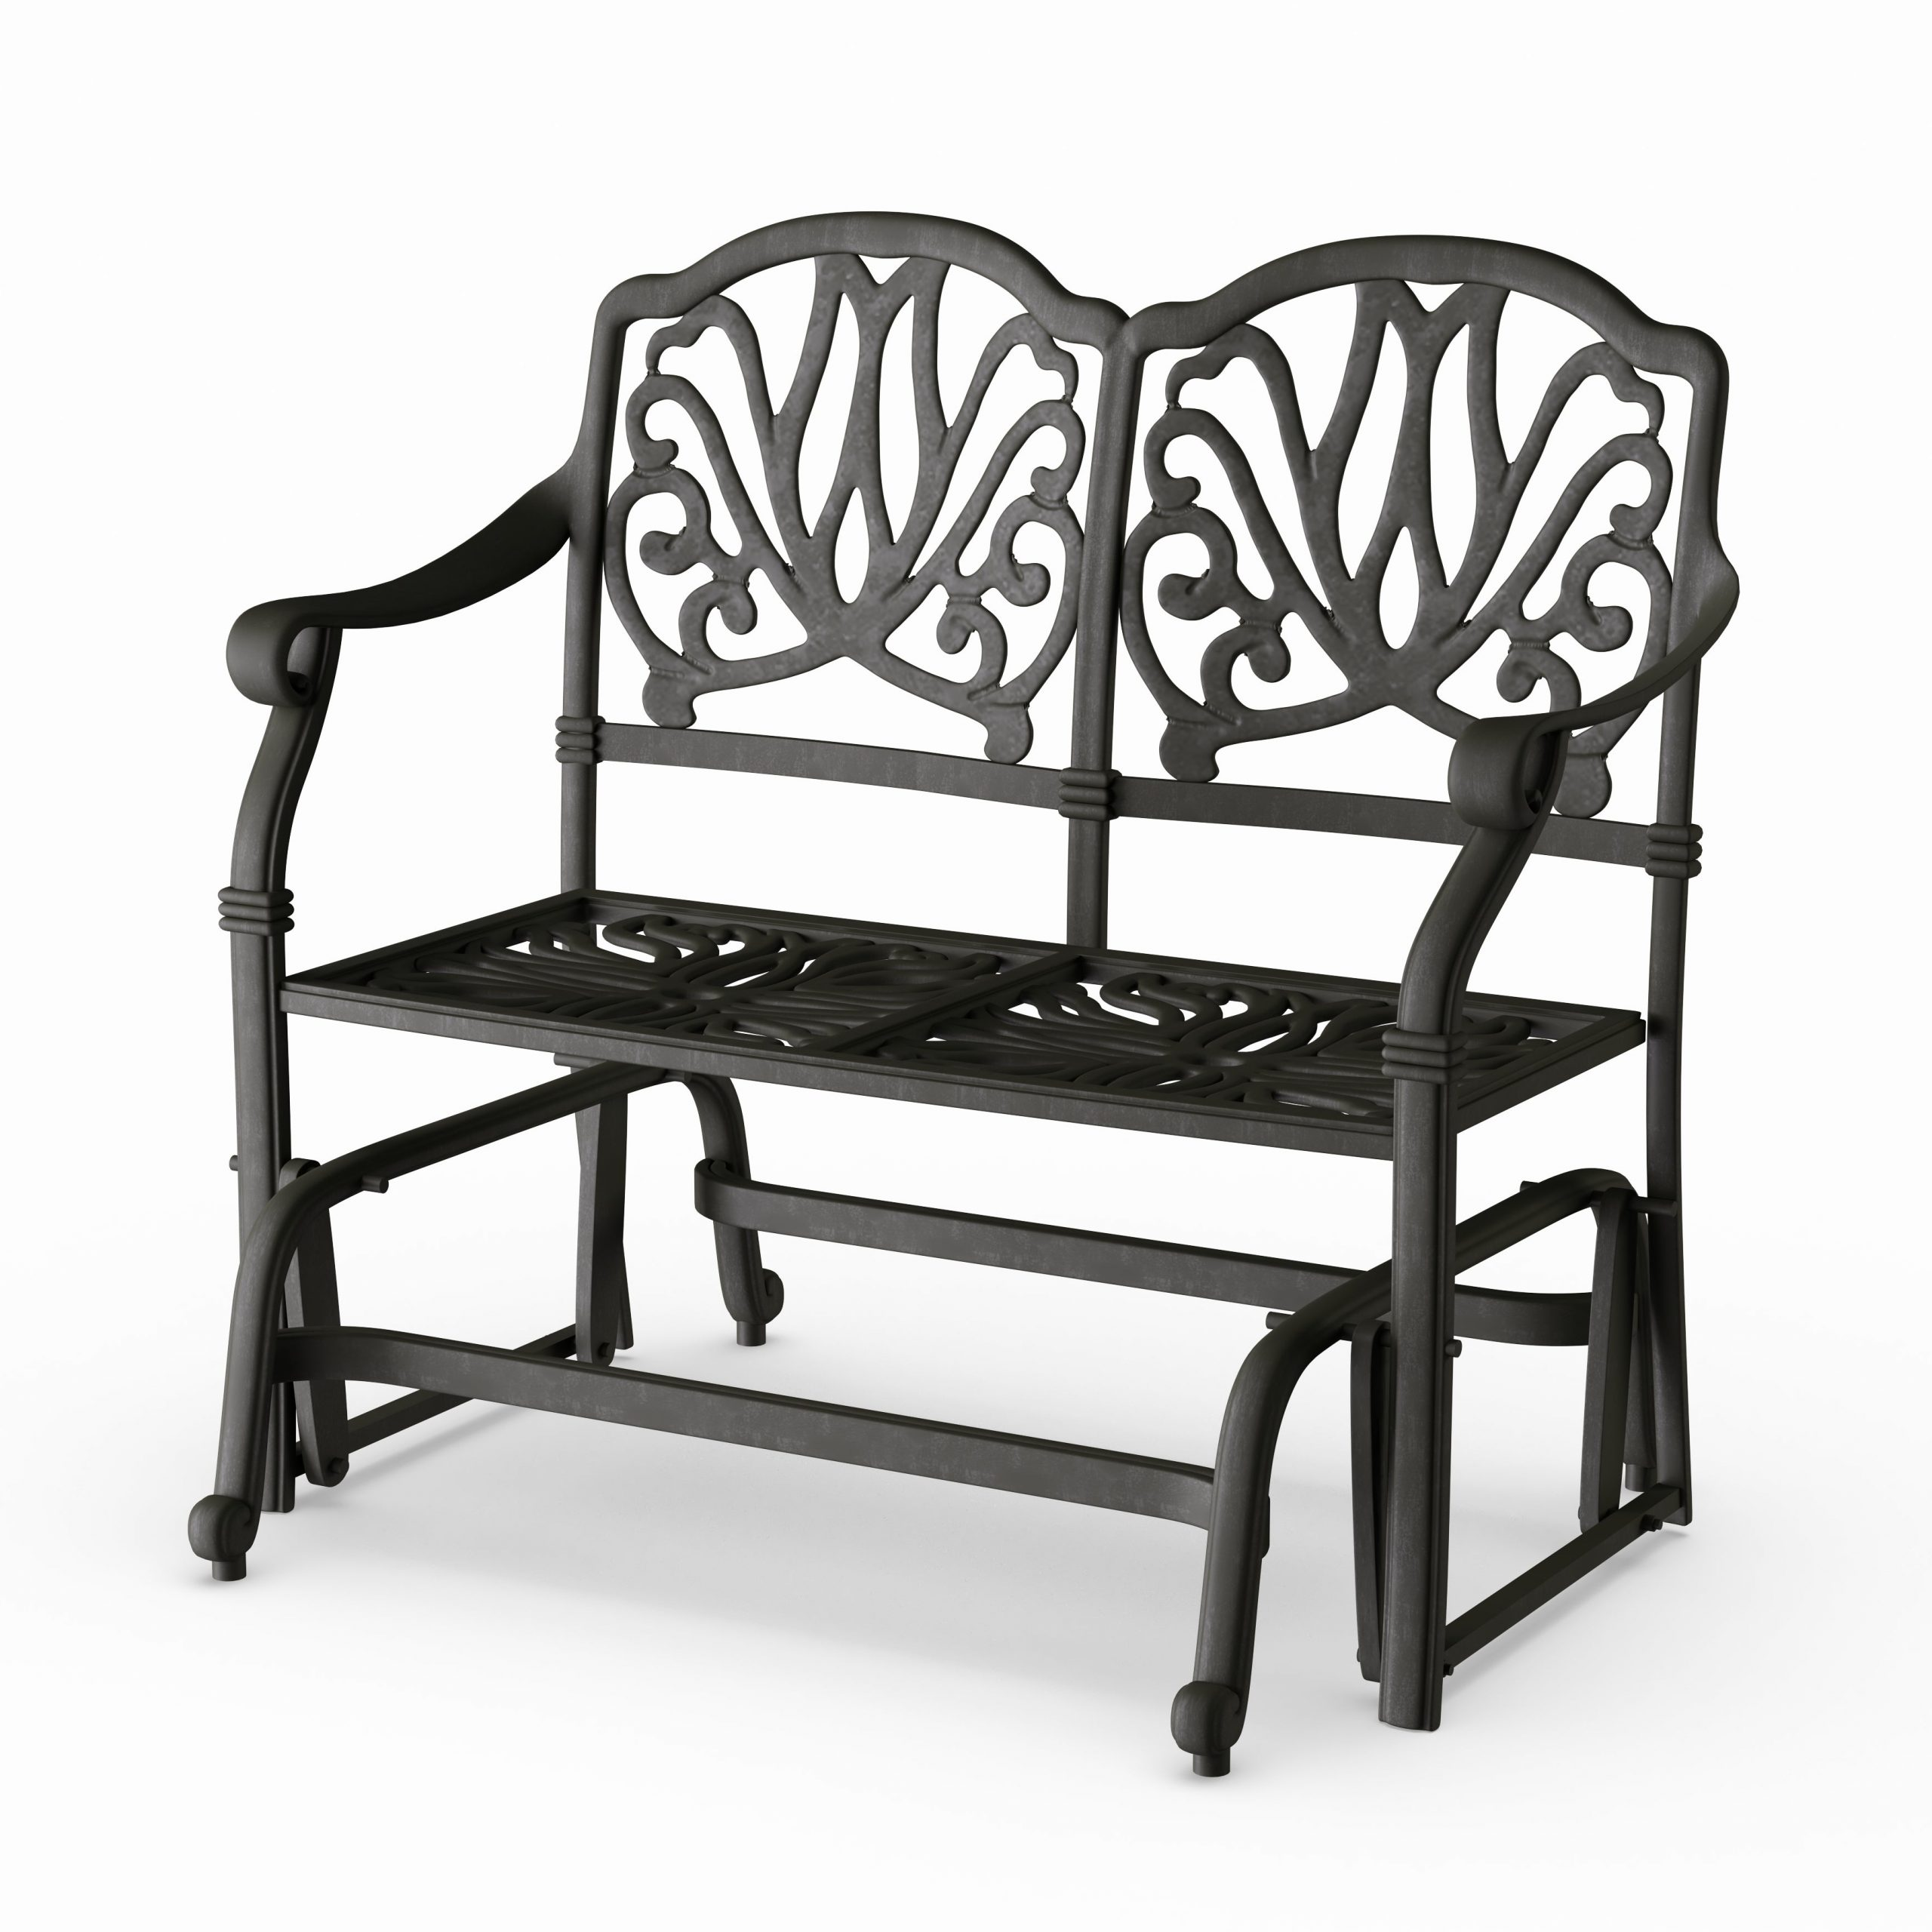 Aluminum Glider Benches With Cushion With Fashionable Havenside Home Avalon Cast Aluminum Glider Bench With Seat Cushion (View 5 of 30)